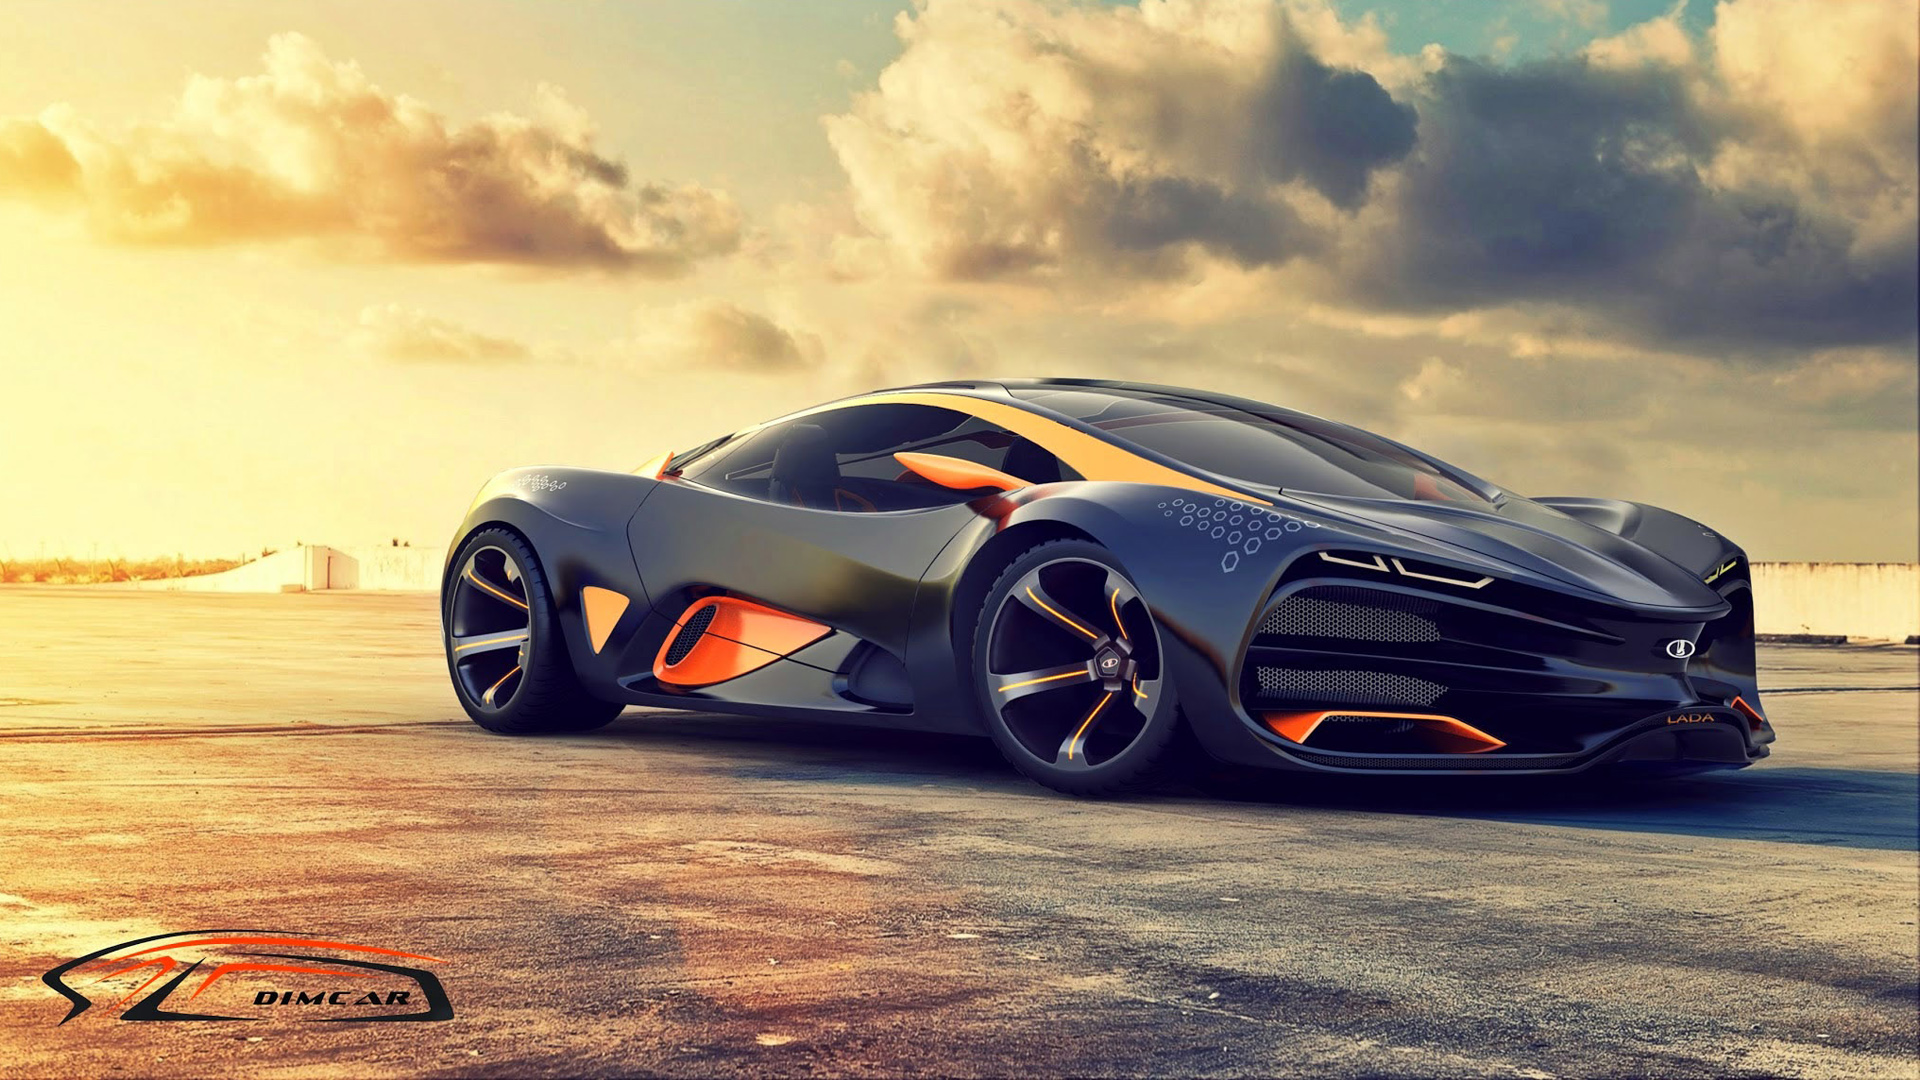 2015 Lada Raven Supercar Concept 2 Wallpaper | HD Car ...